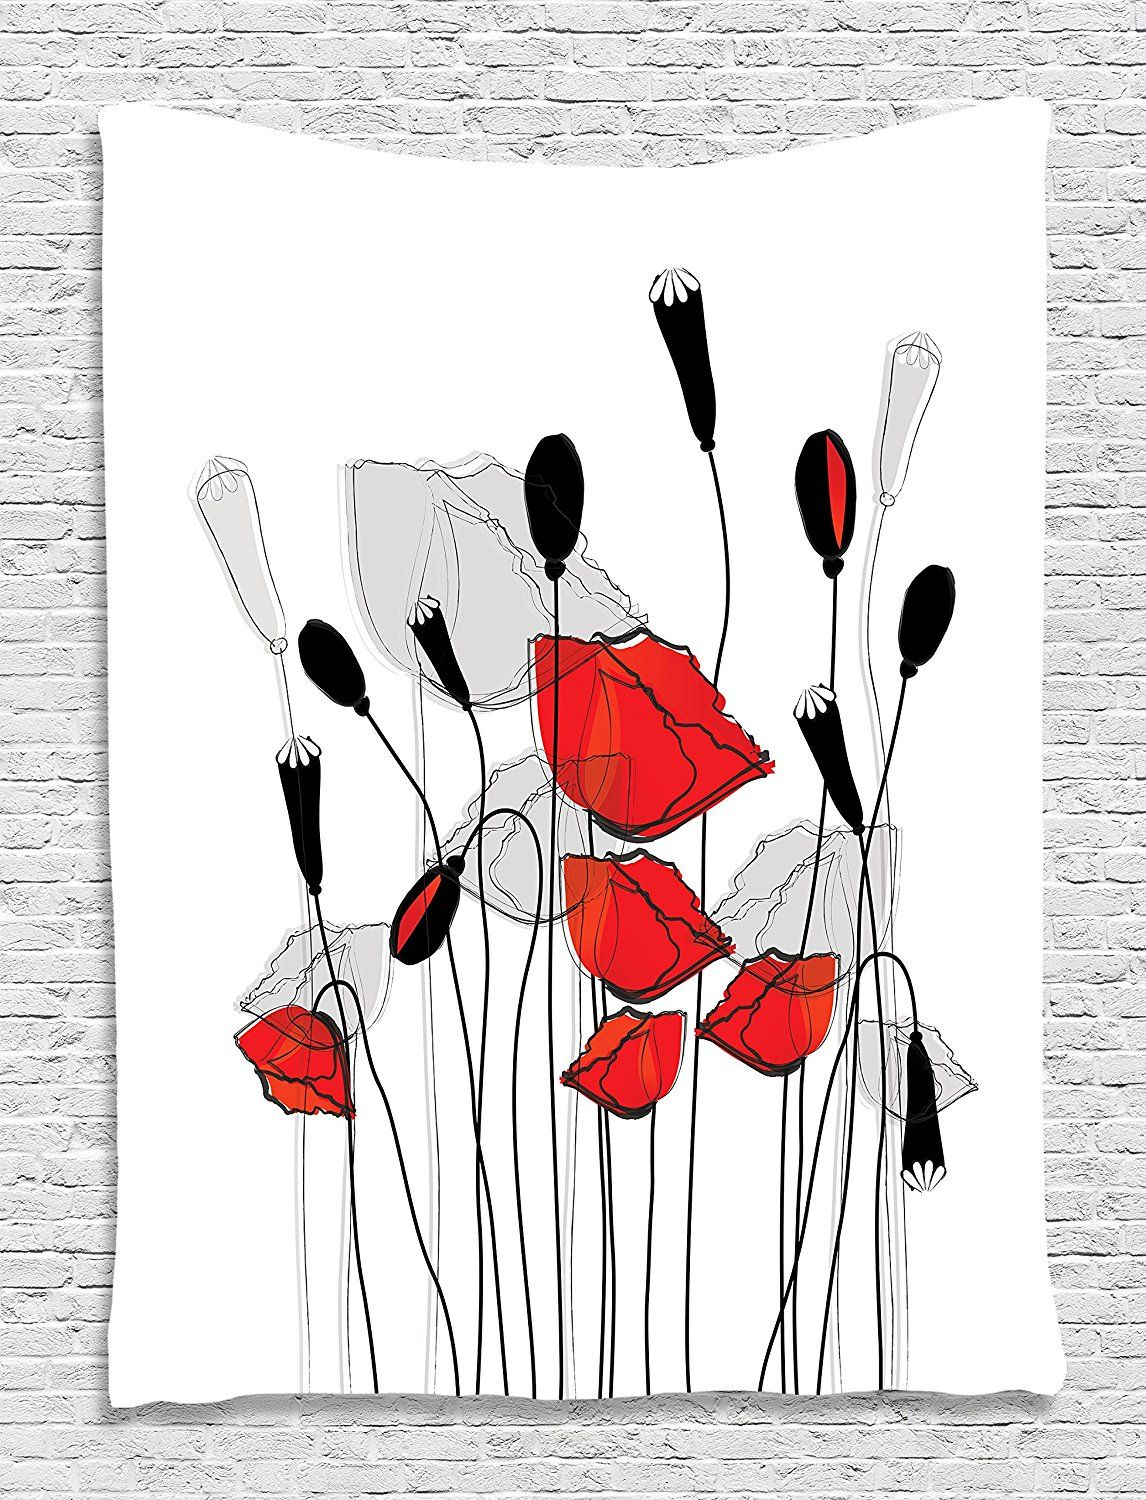 Blooming flowers poppy poppies floral decor bouquet garden branches